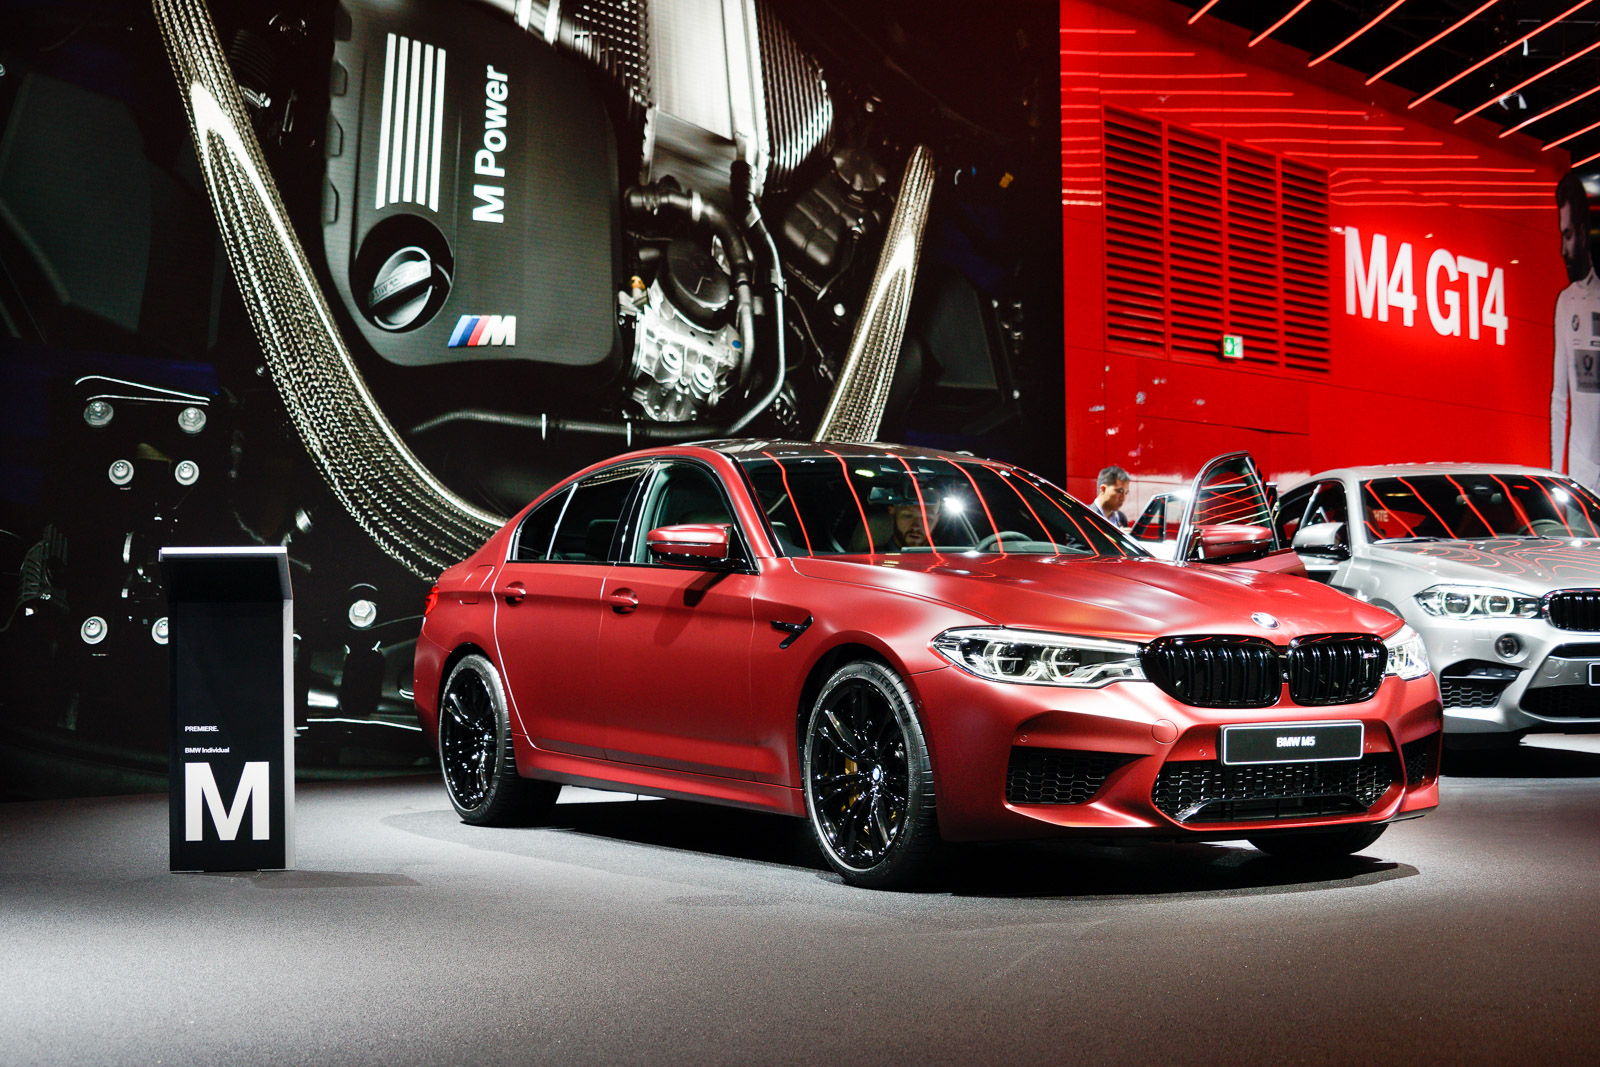 BMW M5 First Edition image